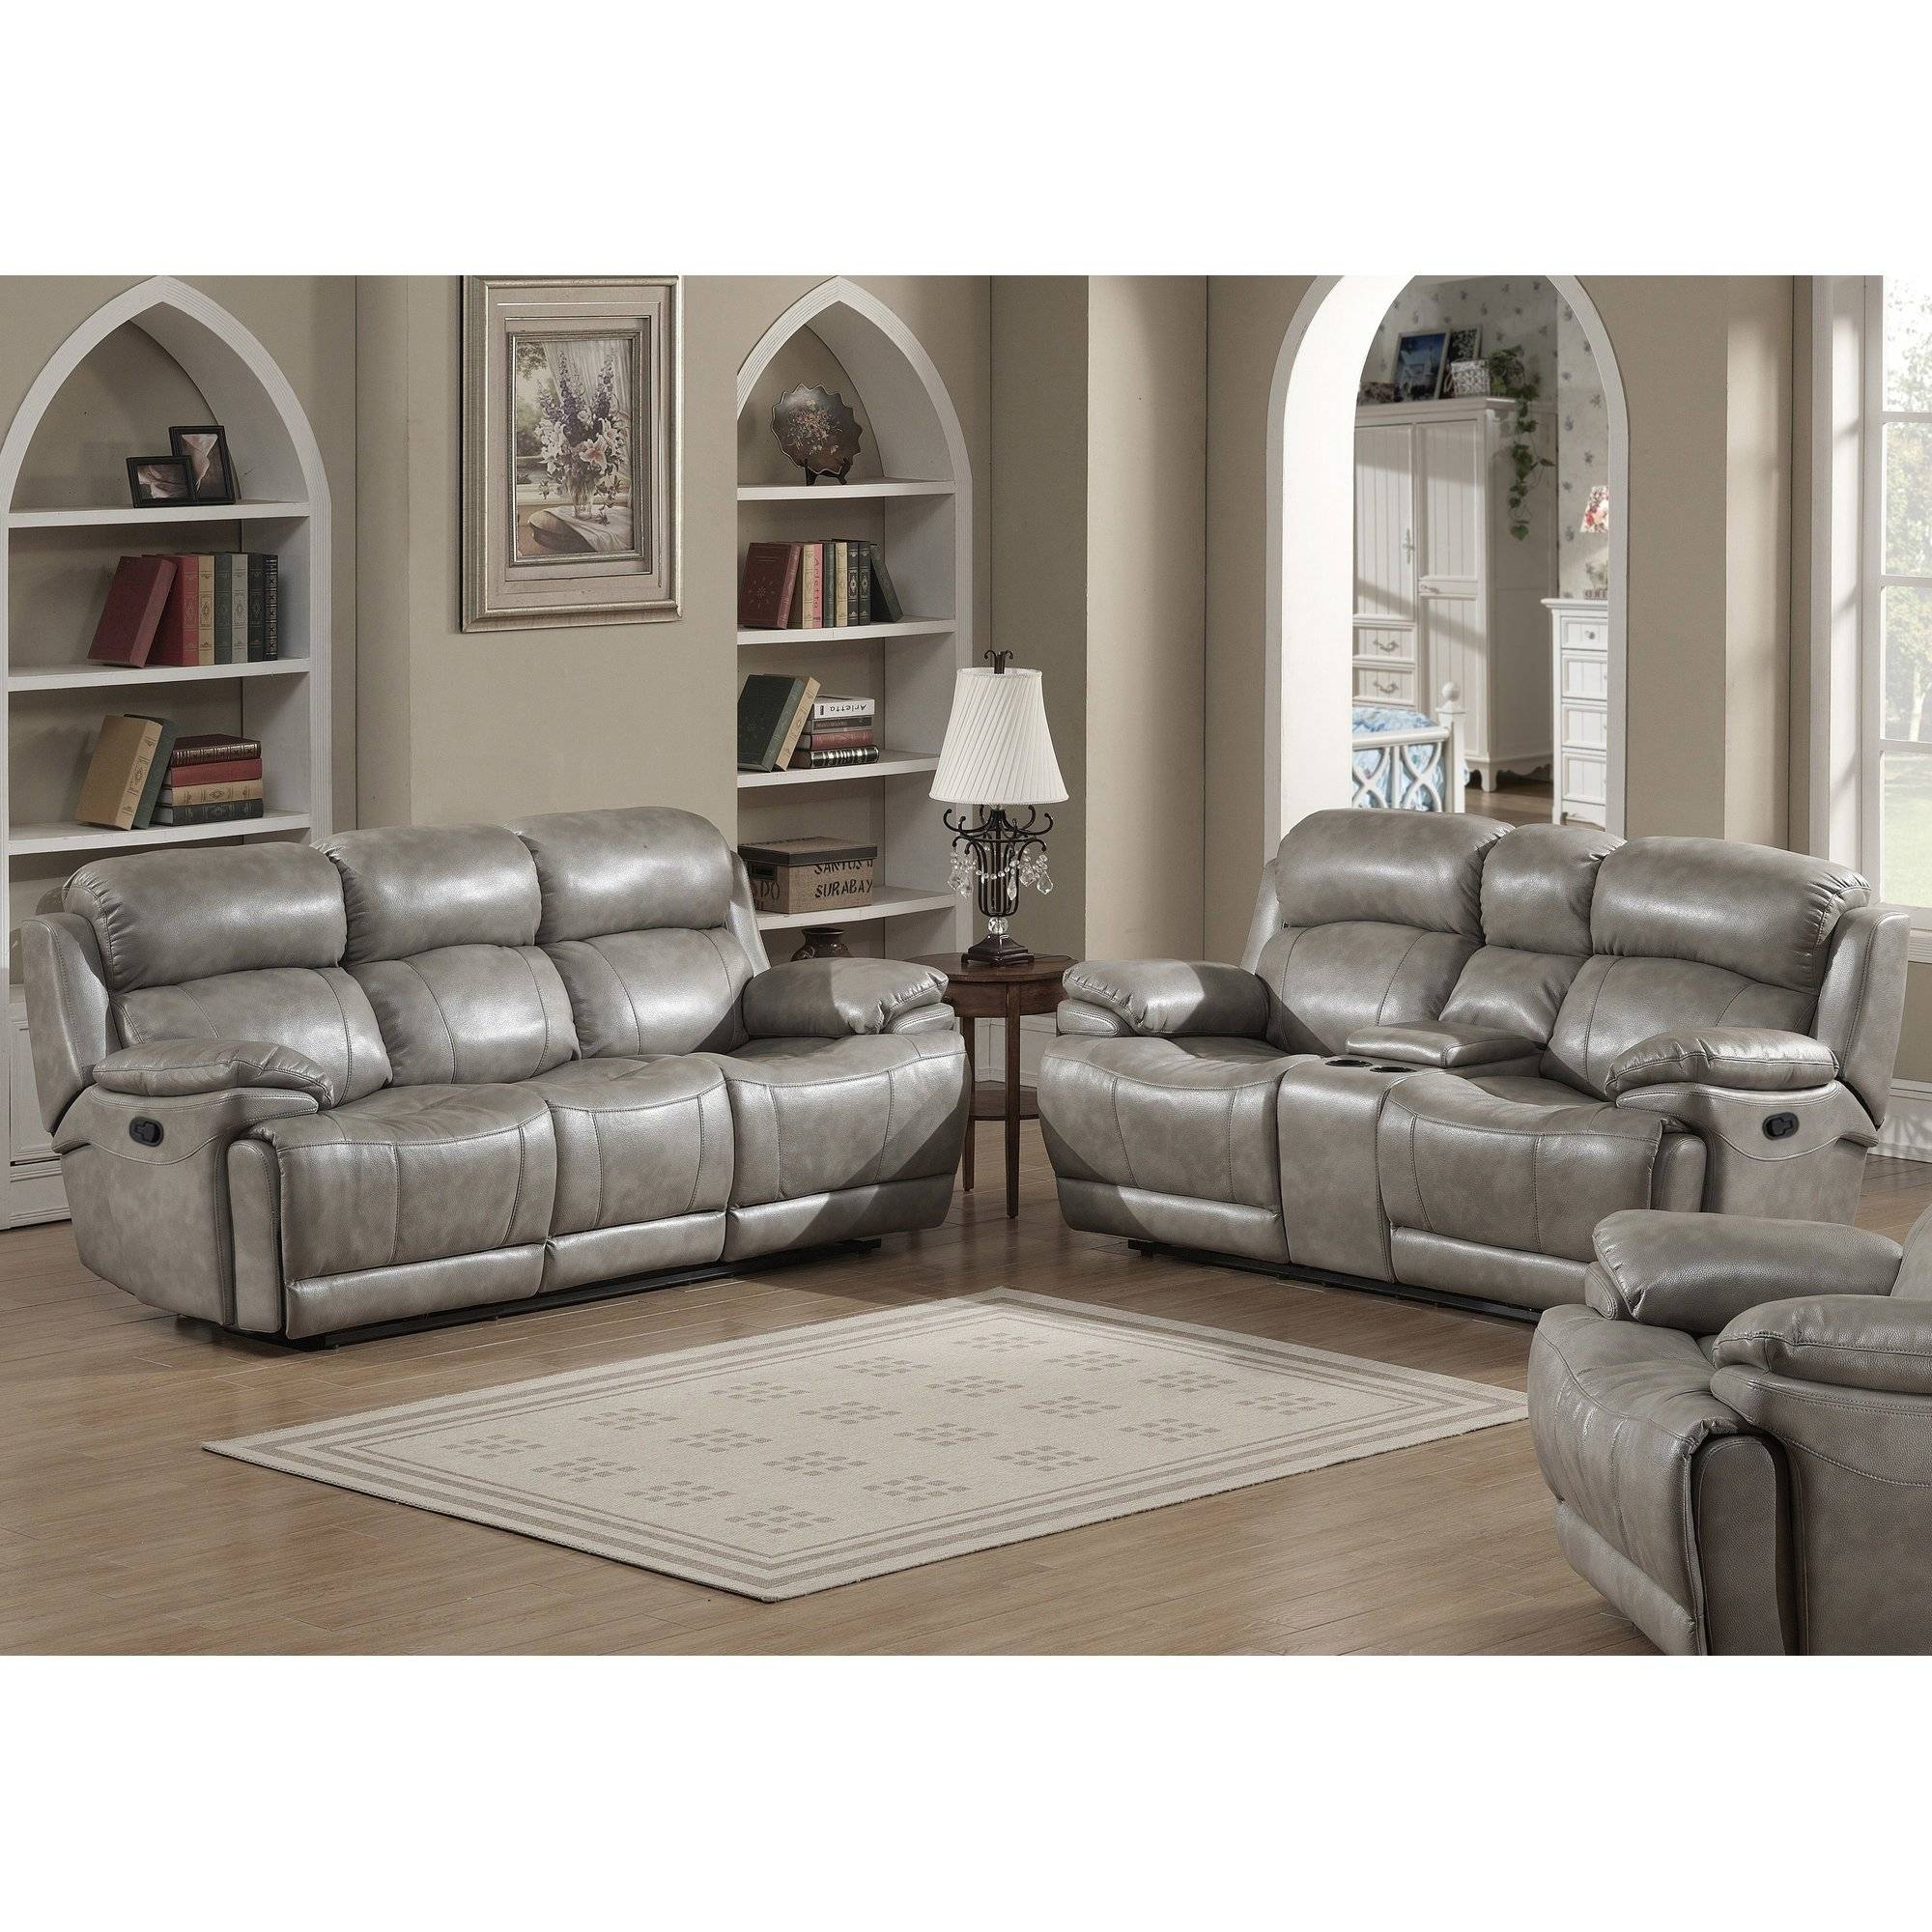 Mixed Leather And Fabric Sofas - Leather Sectional Sofa throughout Leather and Material Sofas (Image 19 of 30)